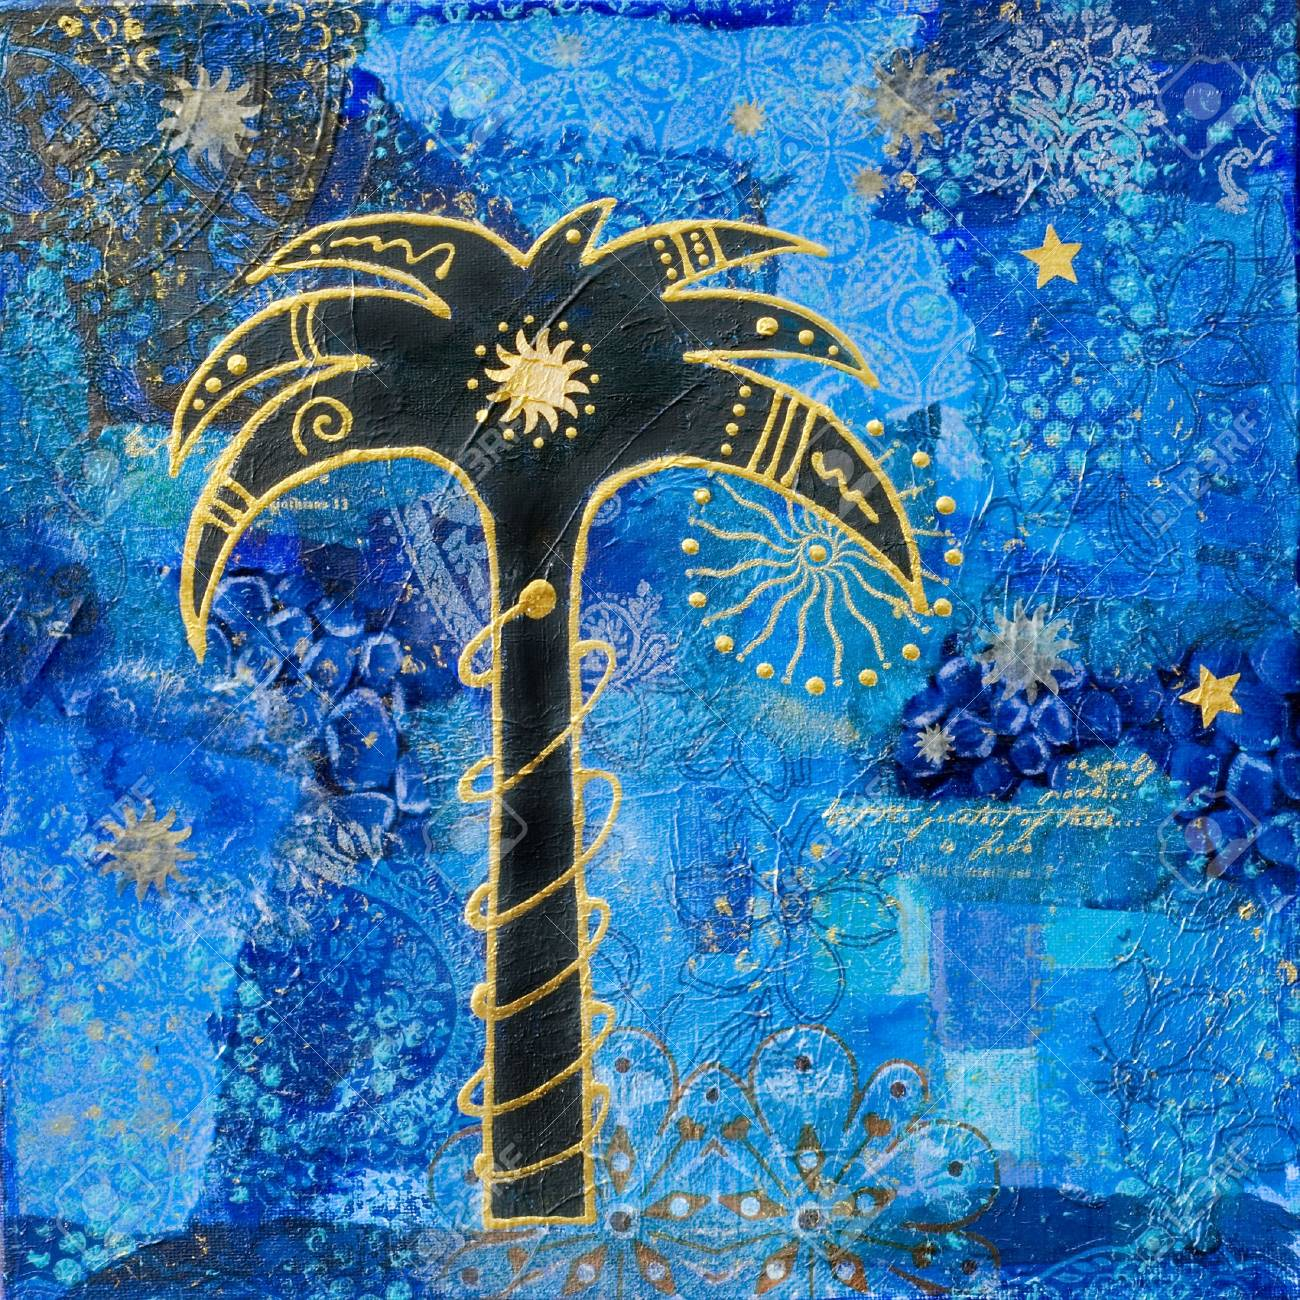 collage painting with palm tree artwork is created and painted